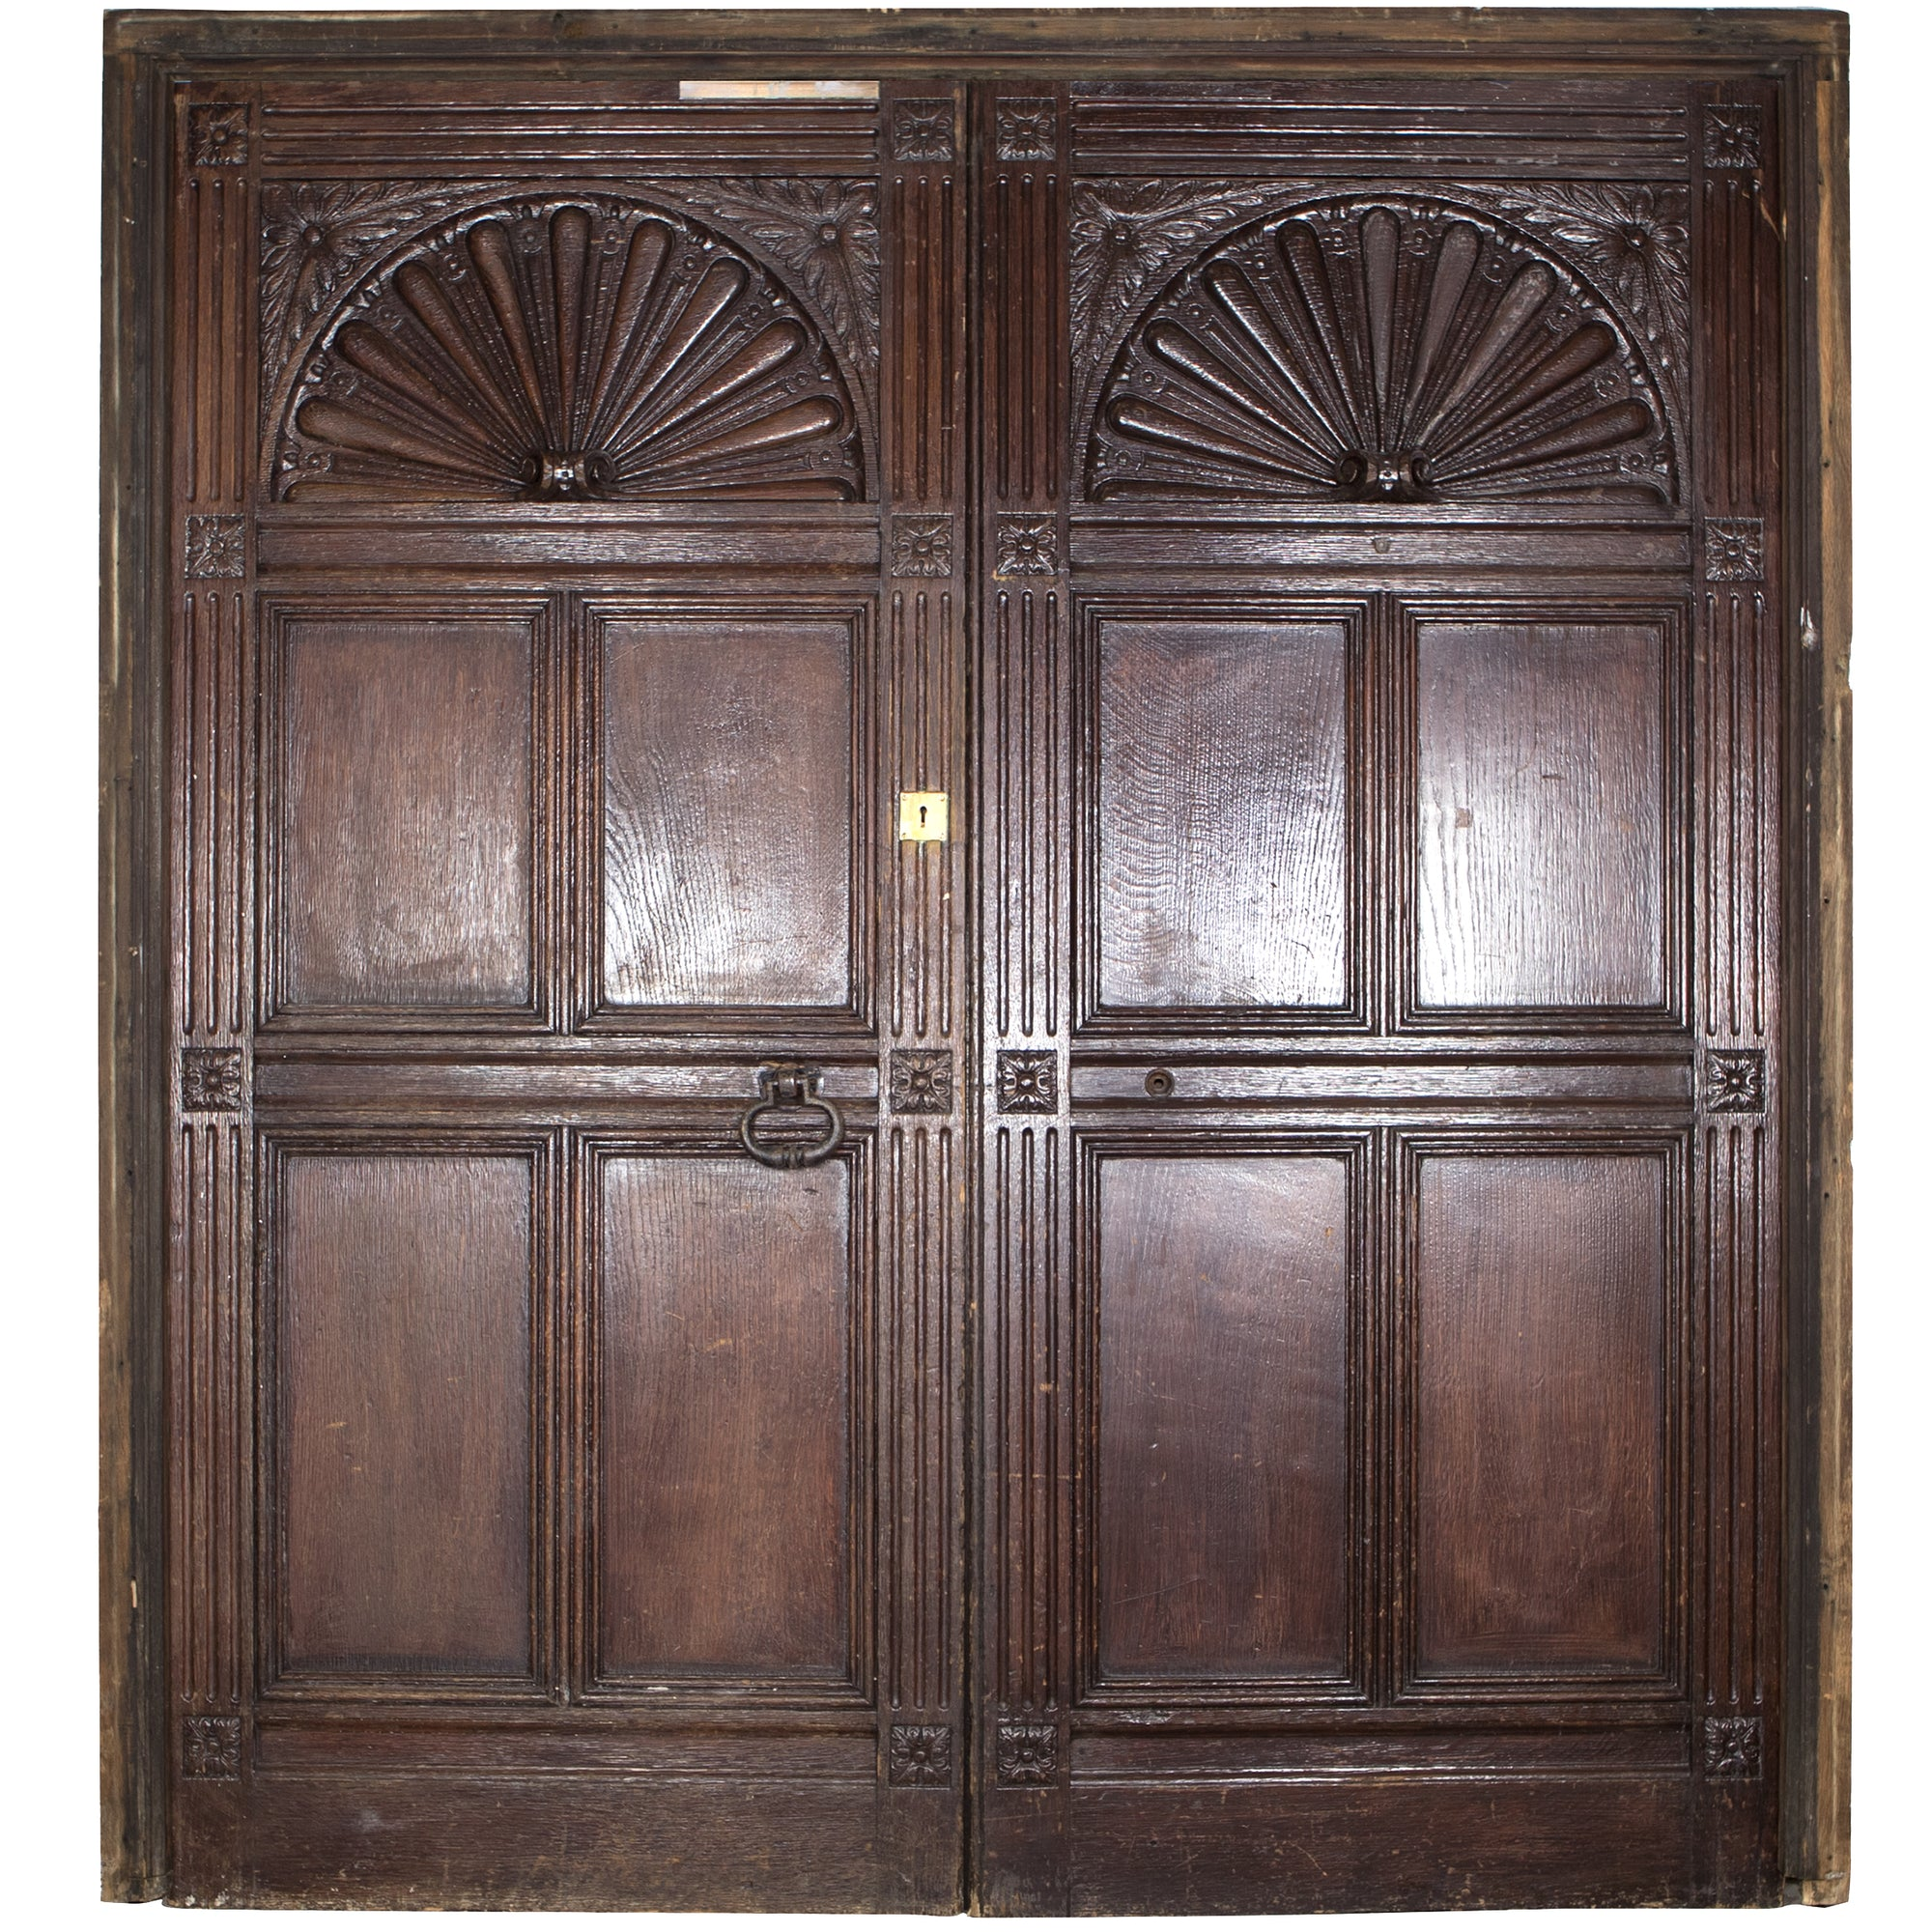 Reclaimed Carved Wooden Tudor Style Double Doors with Frame